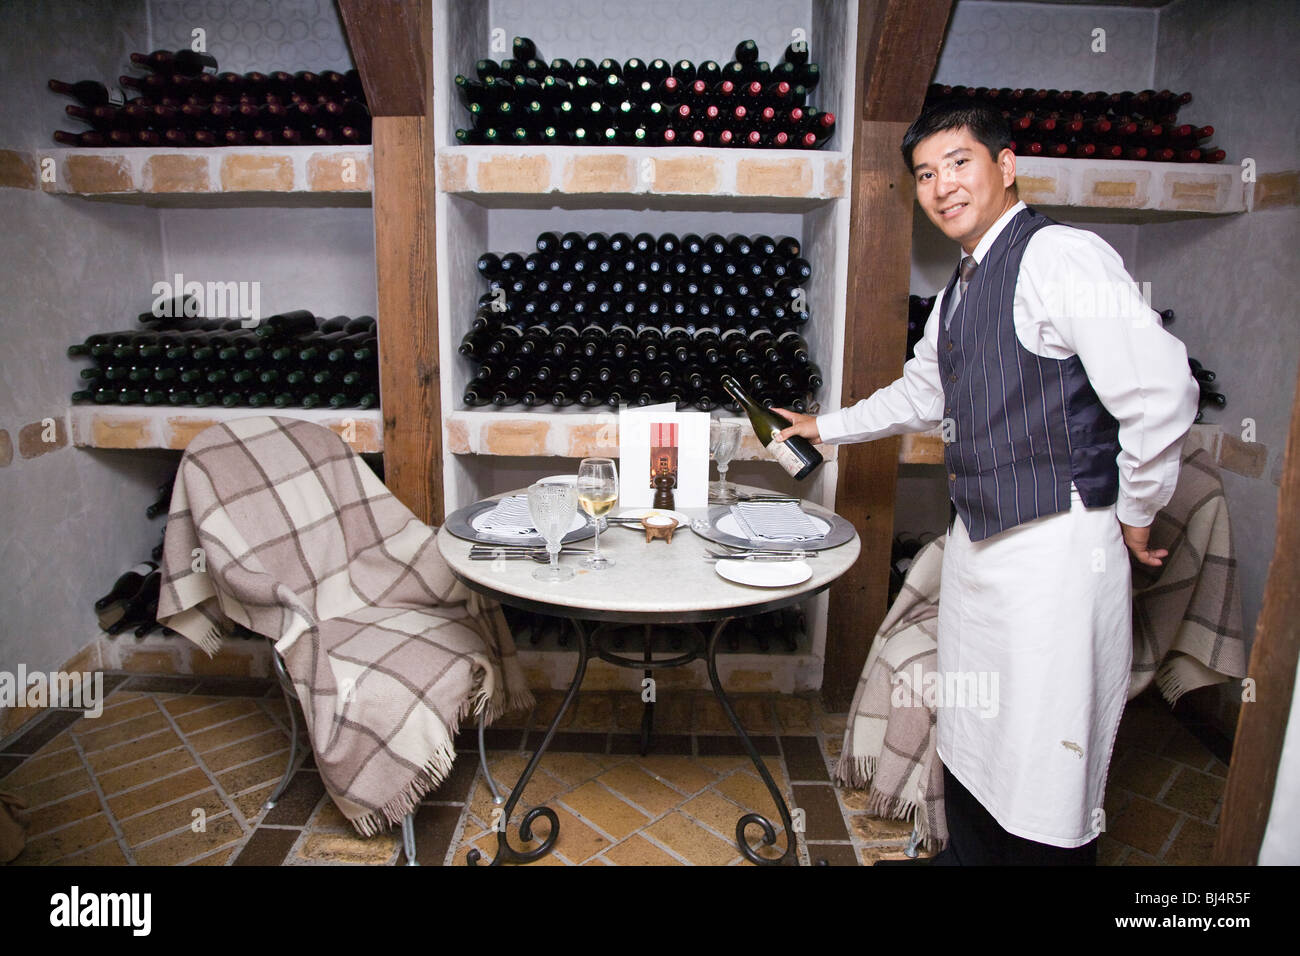 There are a number of unique dining venues, including this one in the wine cellar at Huka Lodge Taupo New Zealand - Stock Image